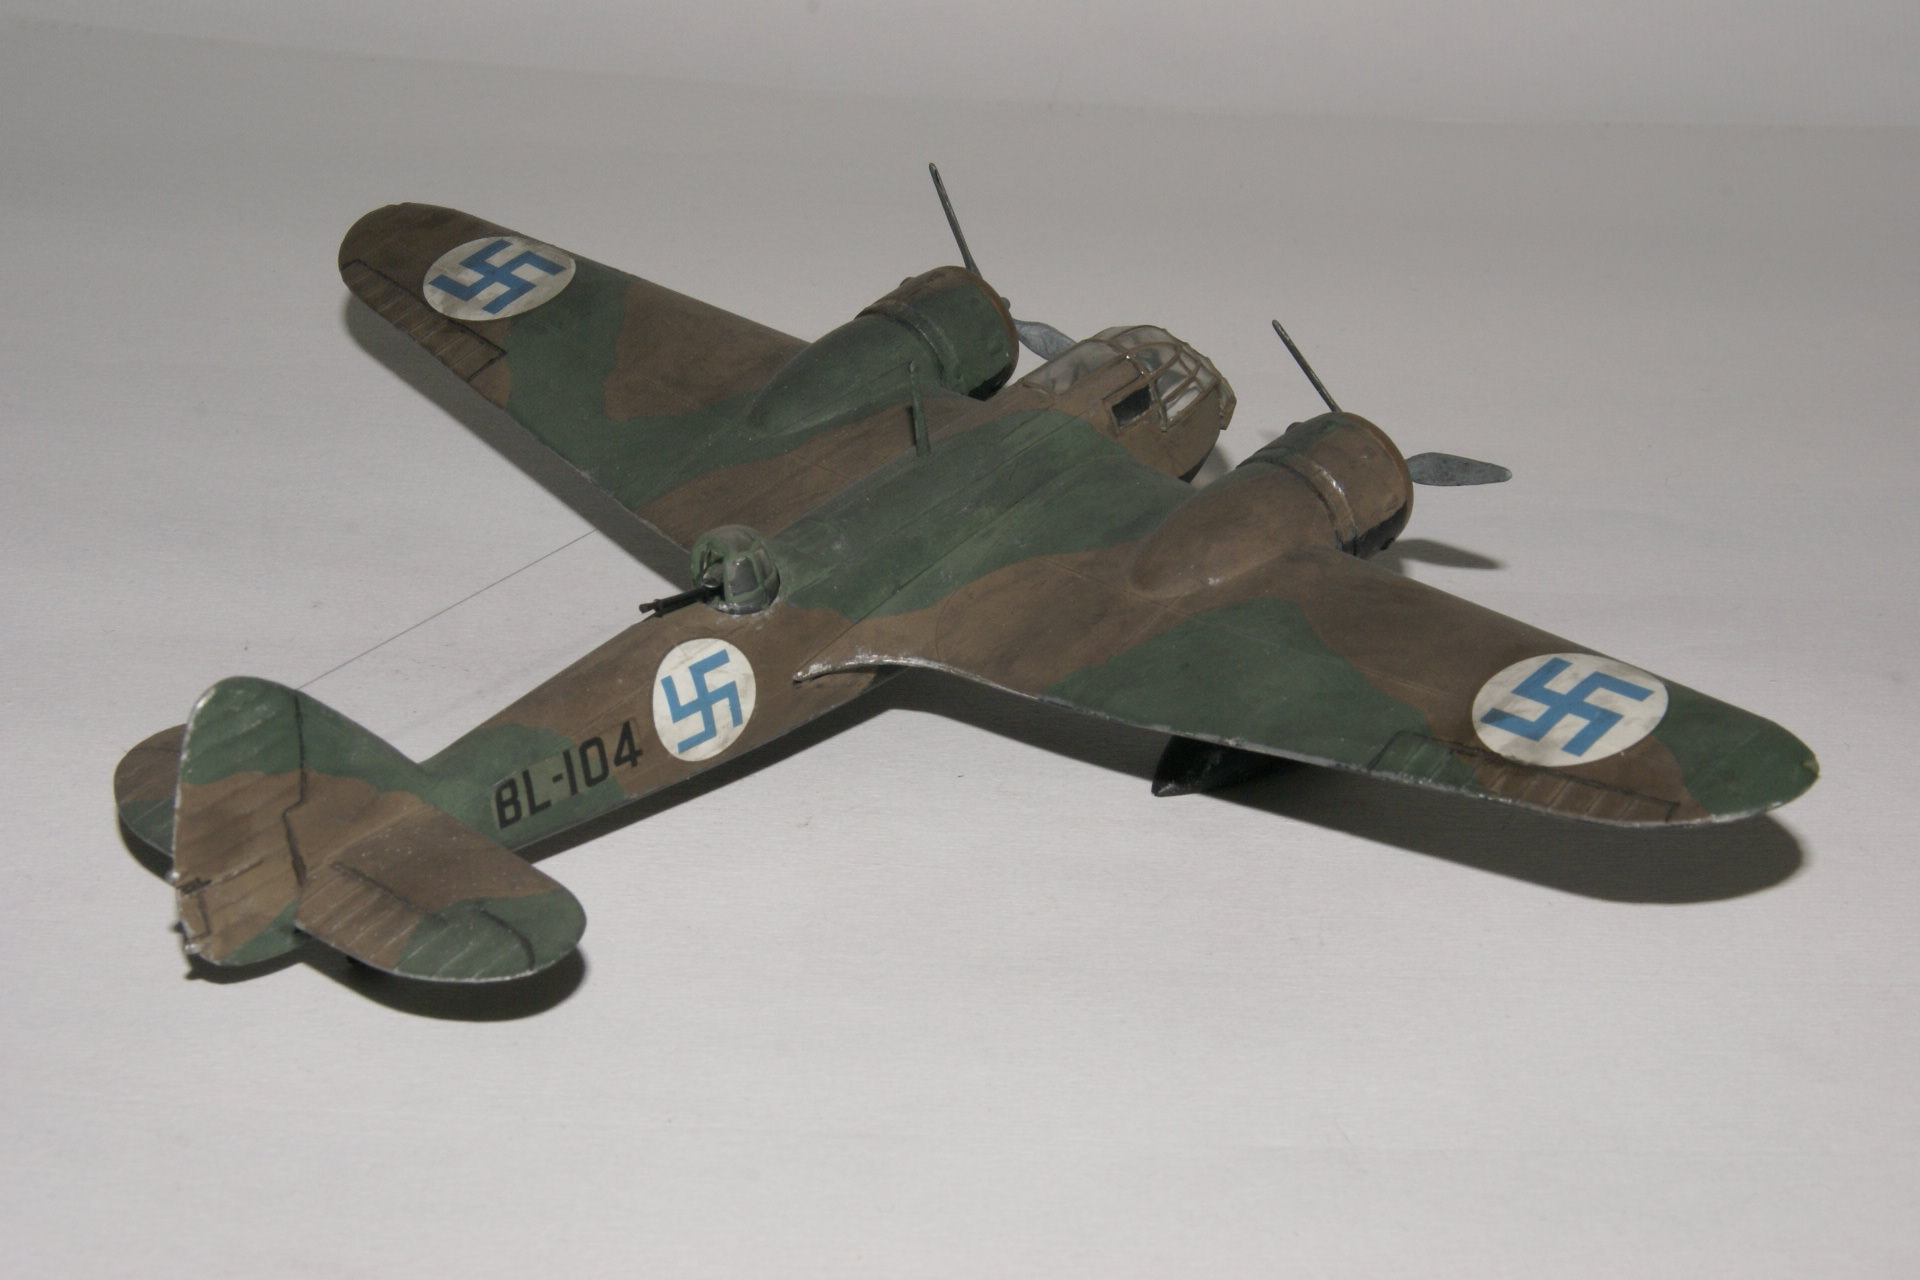 Bristol blenheim i series i 3